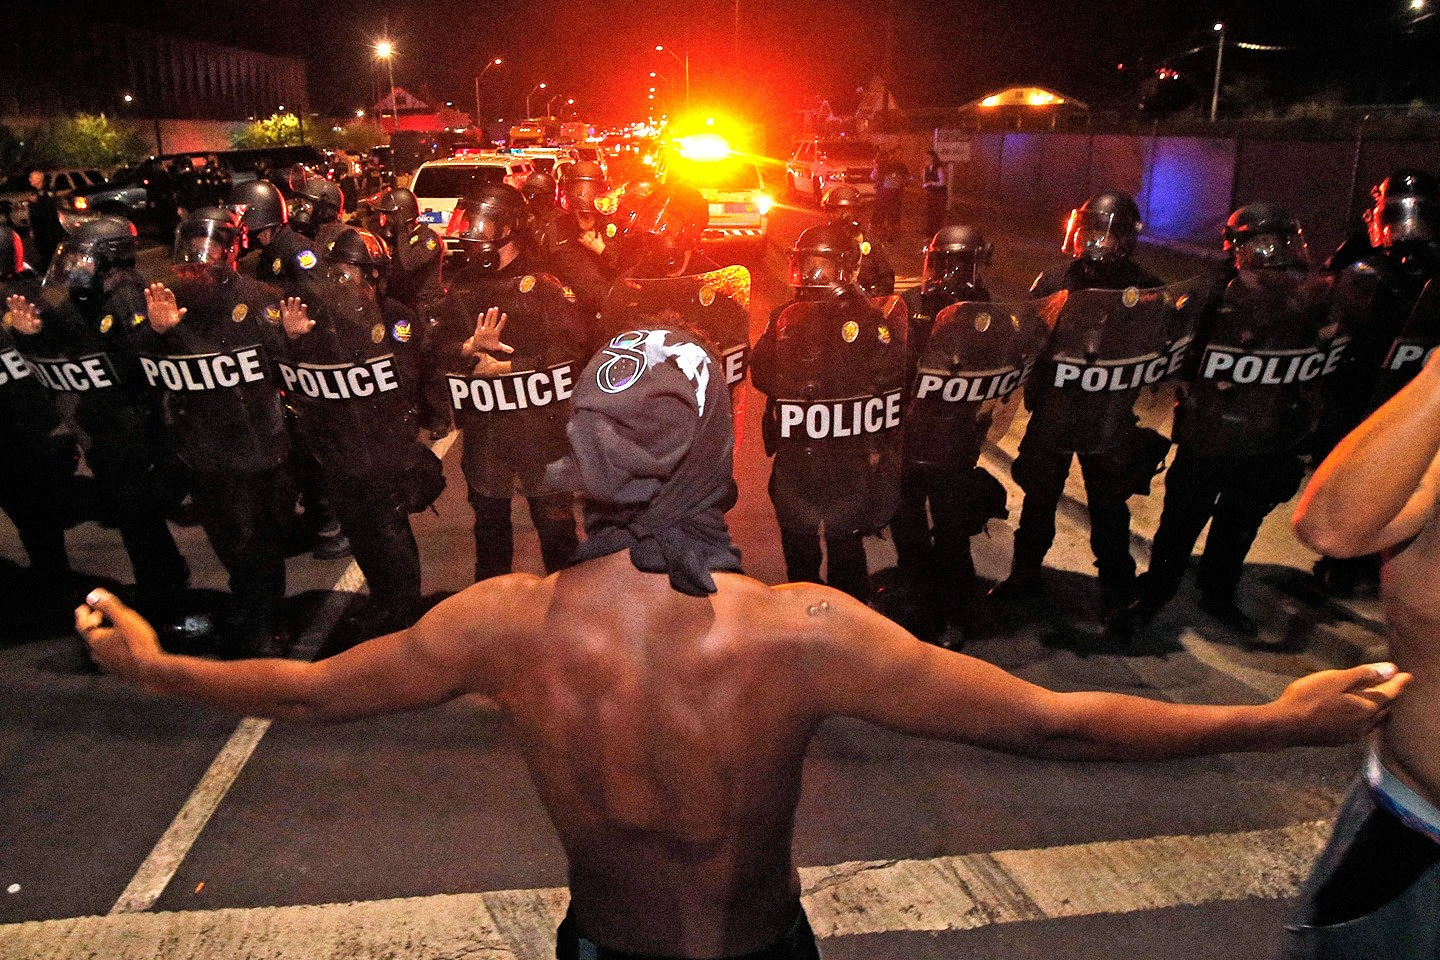 A Black Lives Matter demonstrator faces off against police